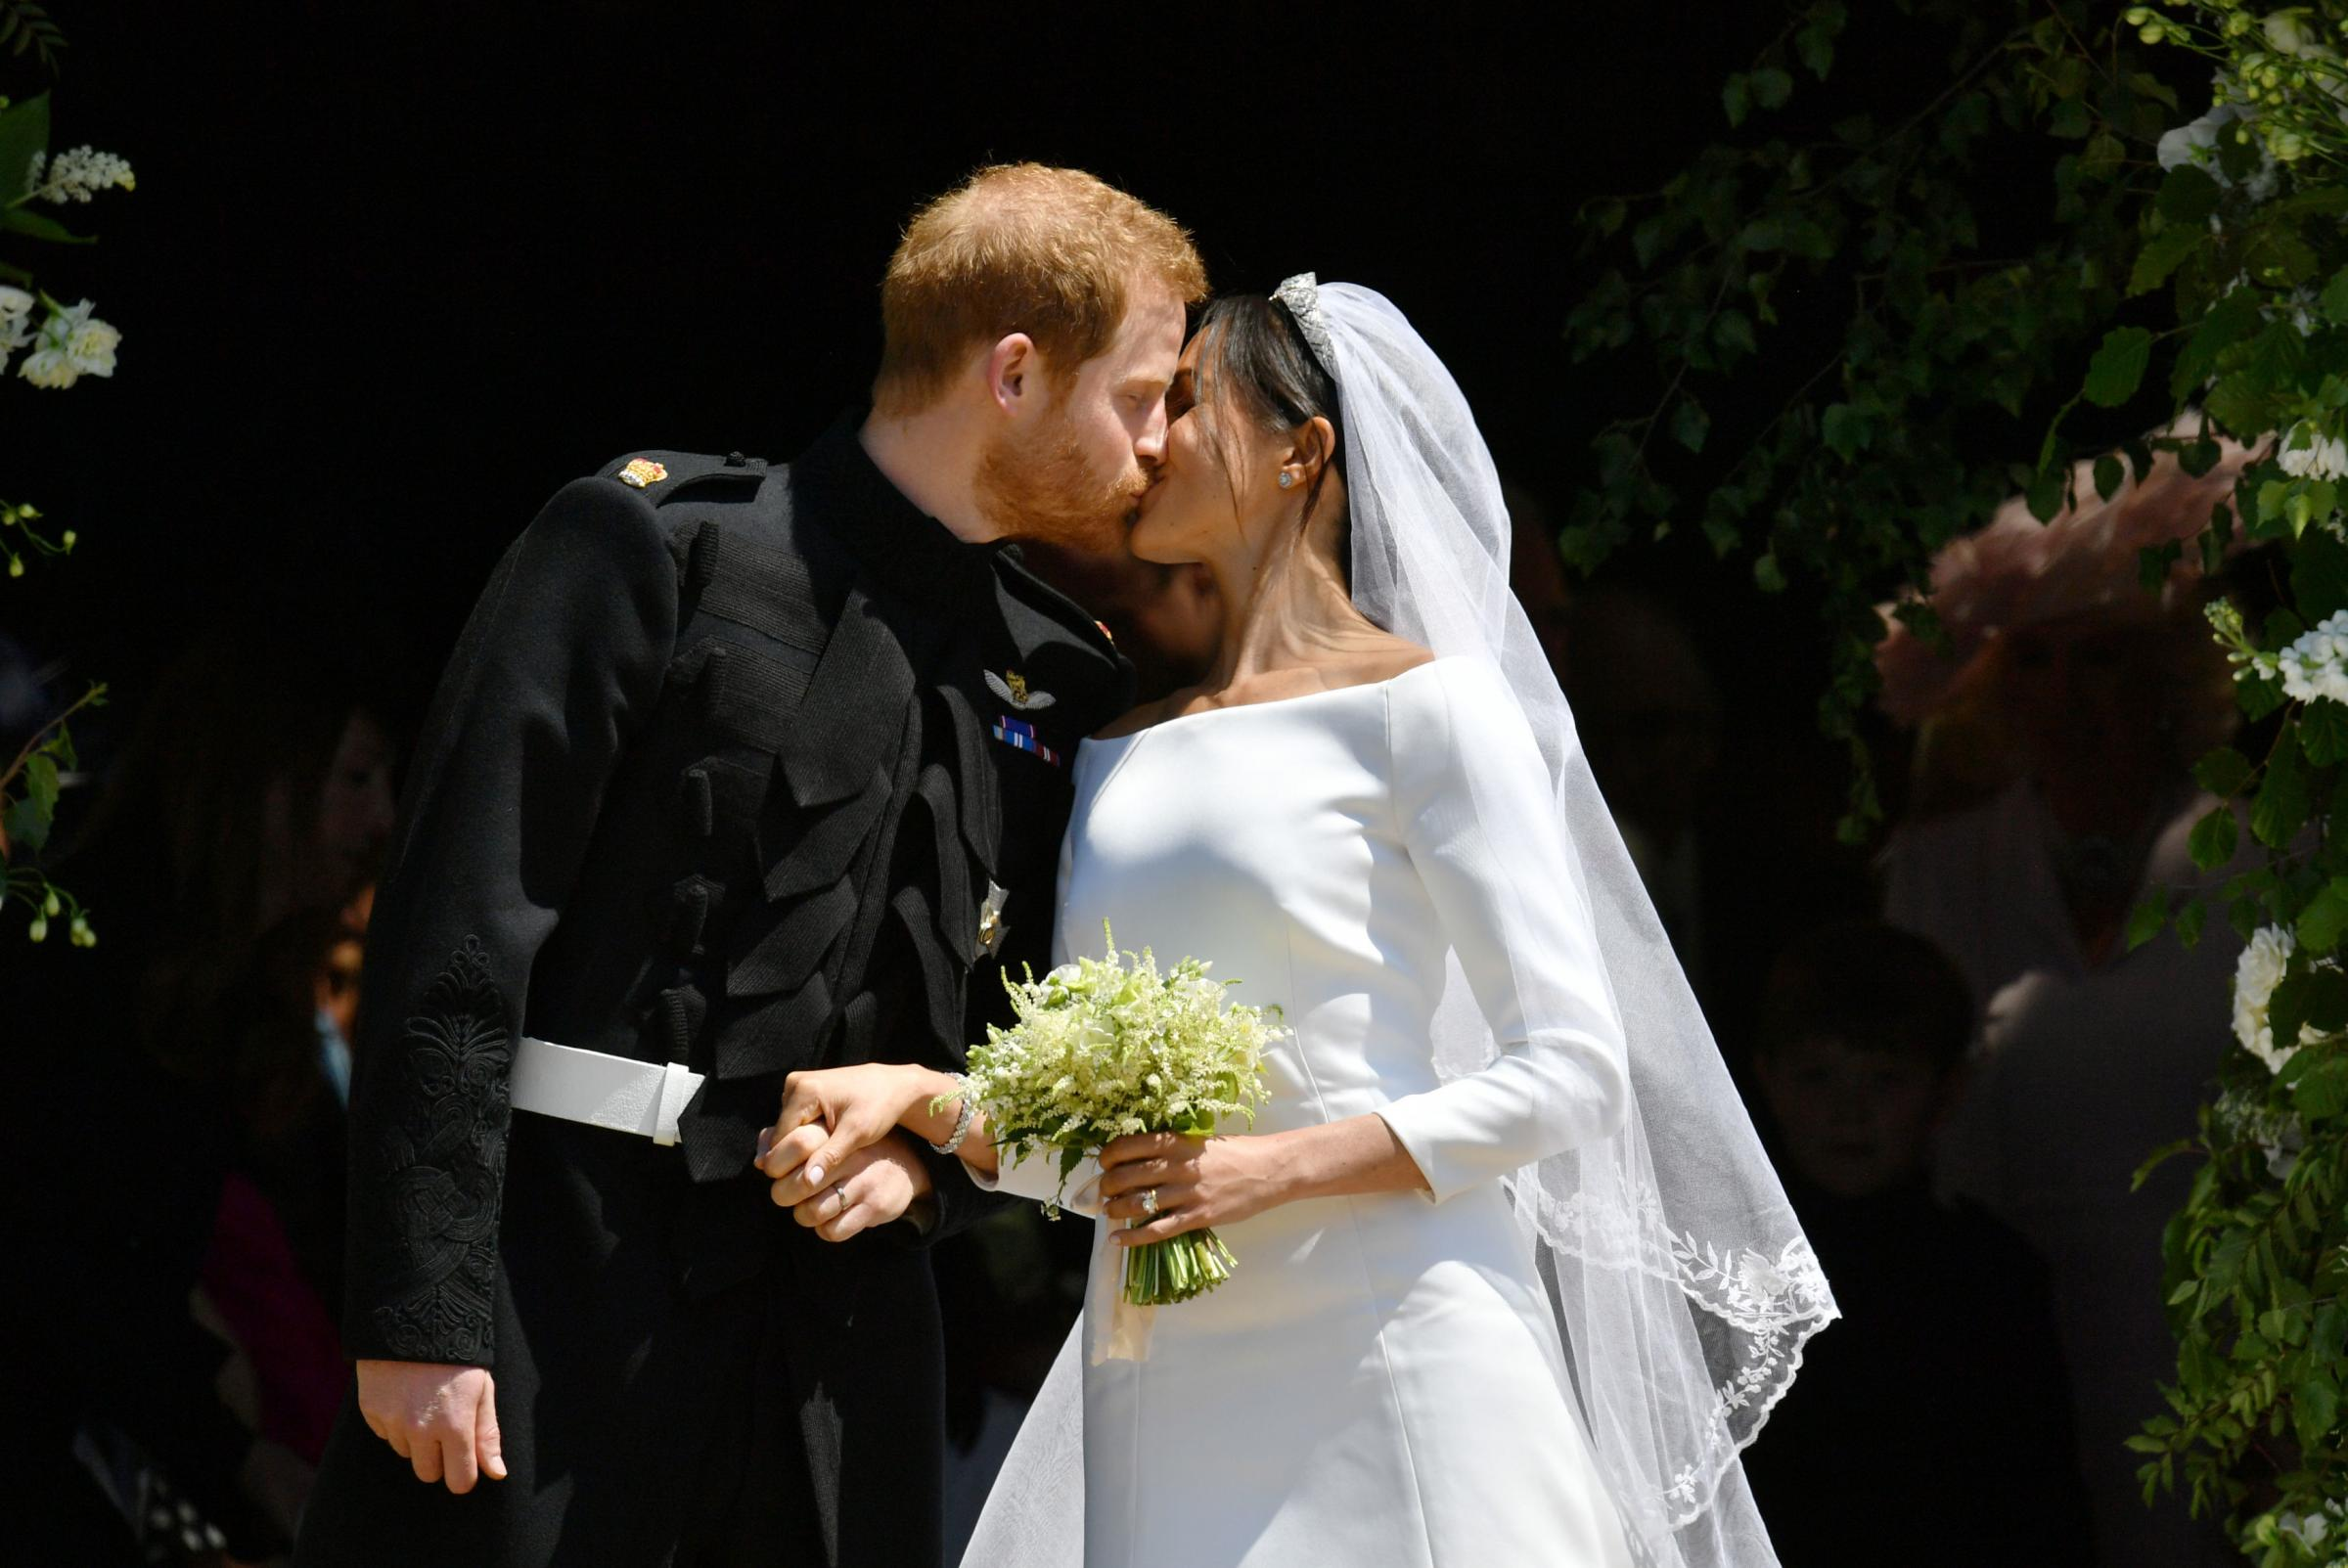 Prince Harry and Meghan Markle kiss as they leave St George's Chapel in Windsor Castle after their wedding Photo credit : Ben Birchall/PA Wire.